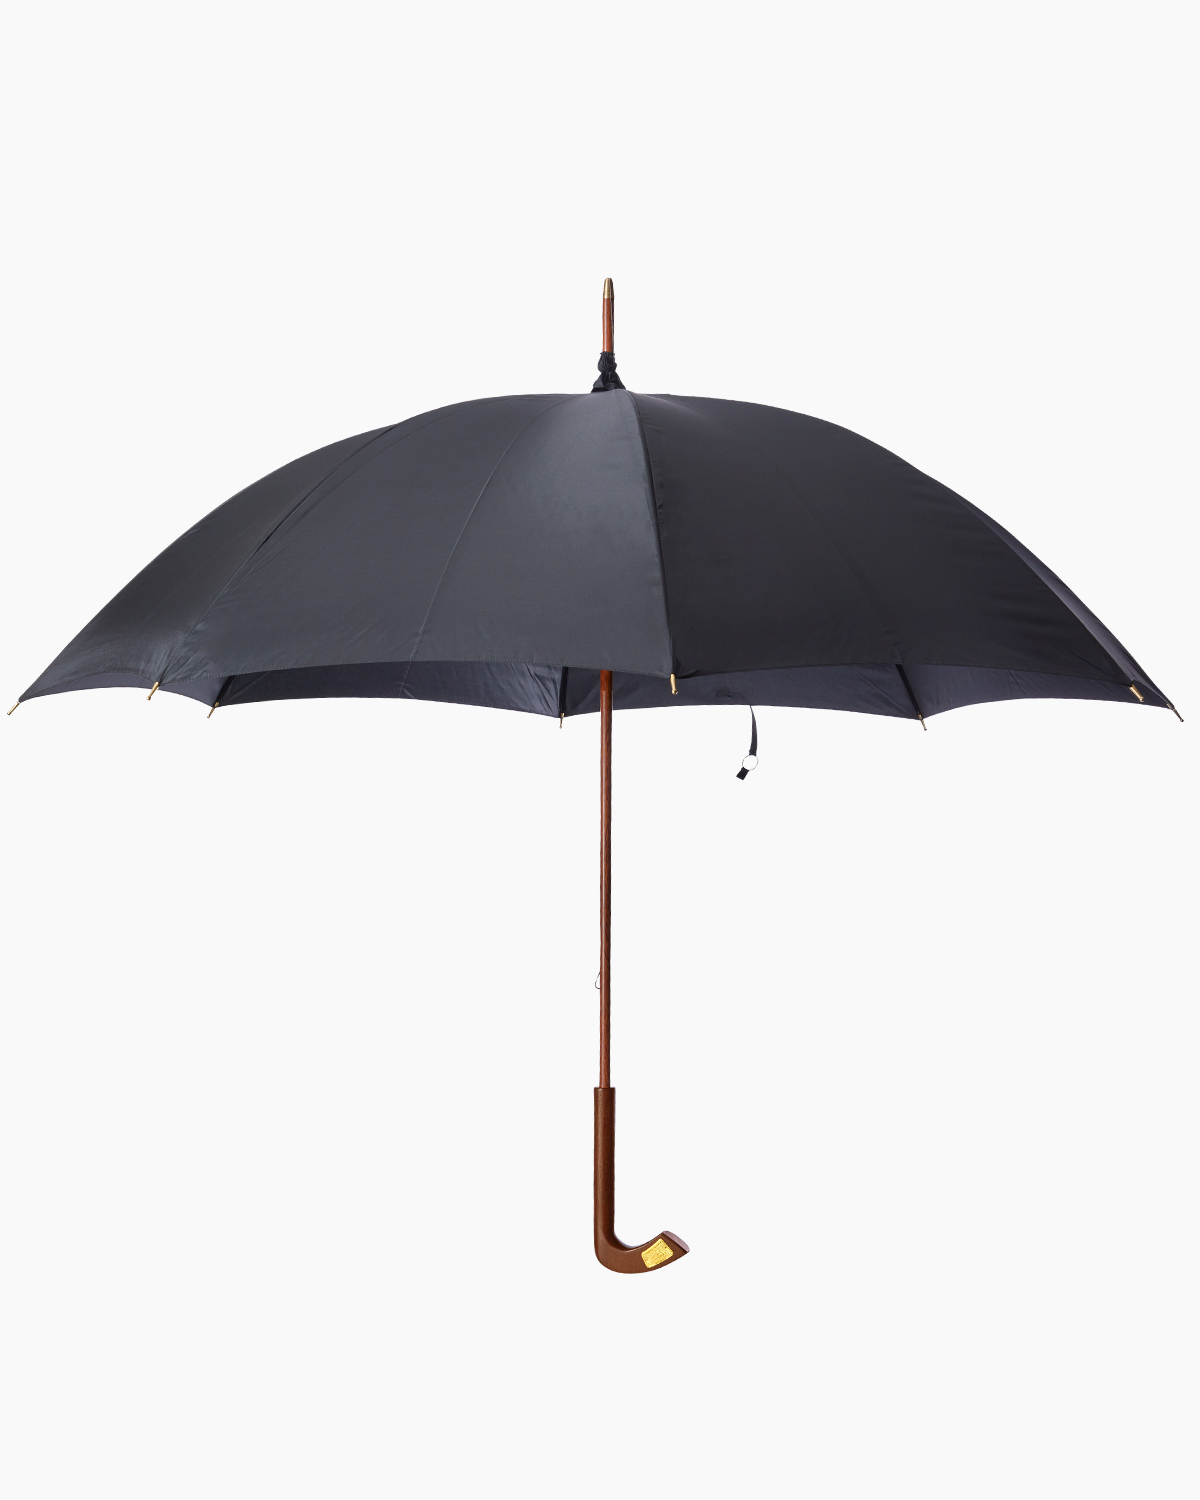 KOUMORI UMBRELLA|(SELECTED)GOODS|SOUVENIR